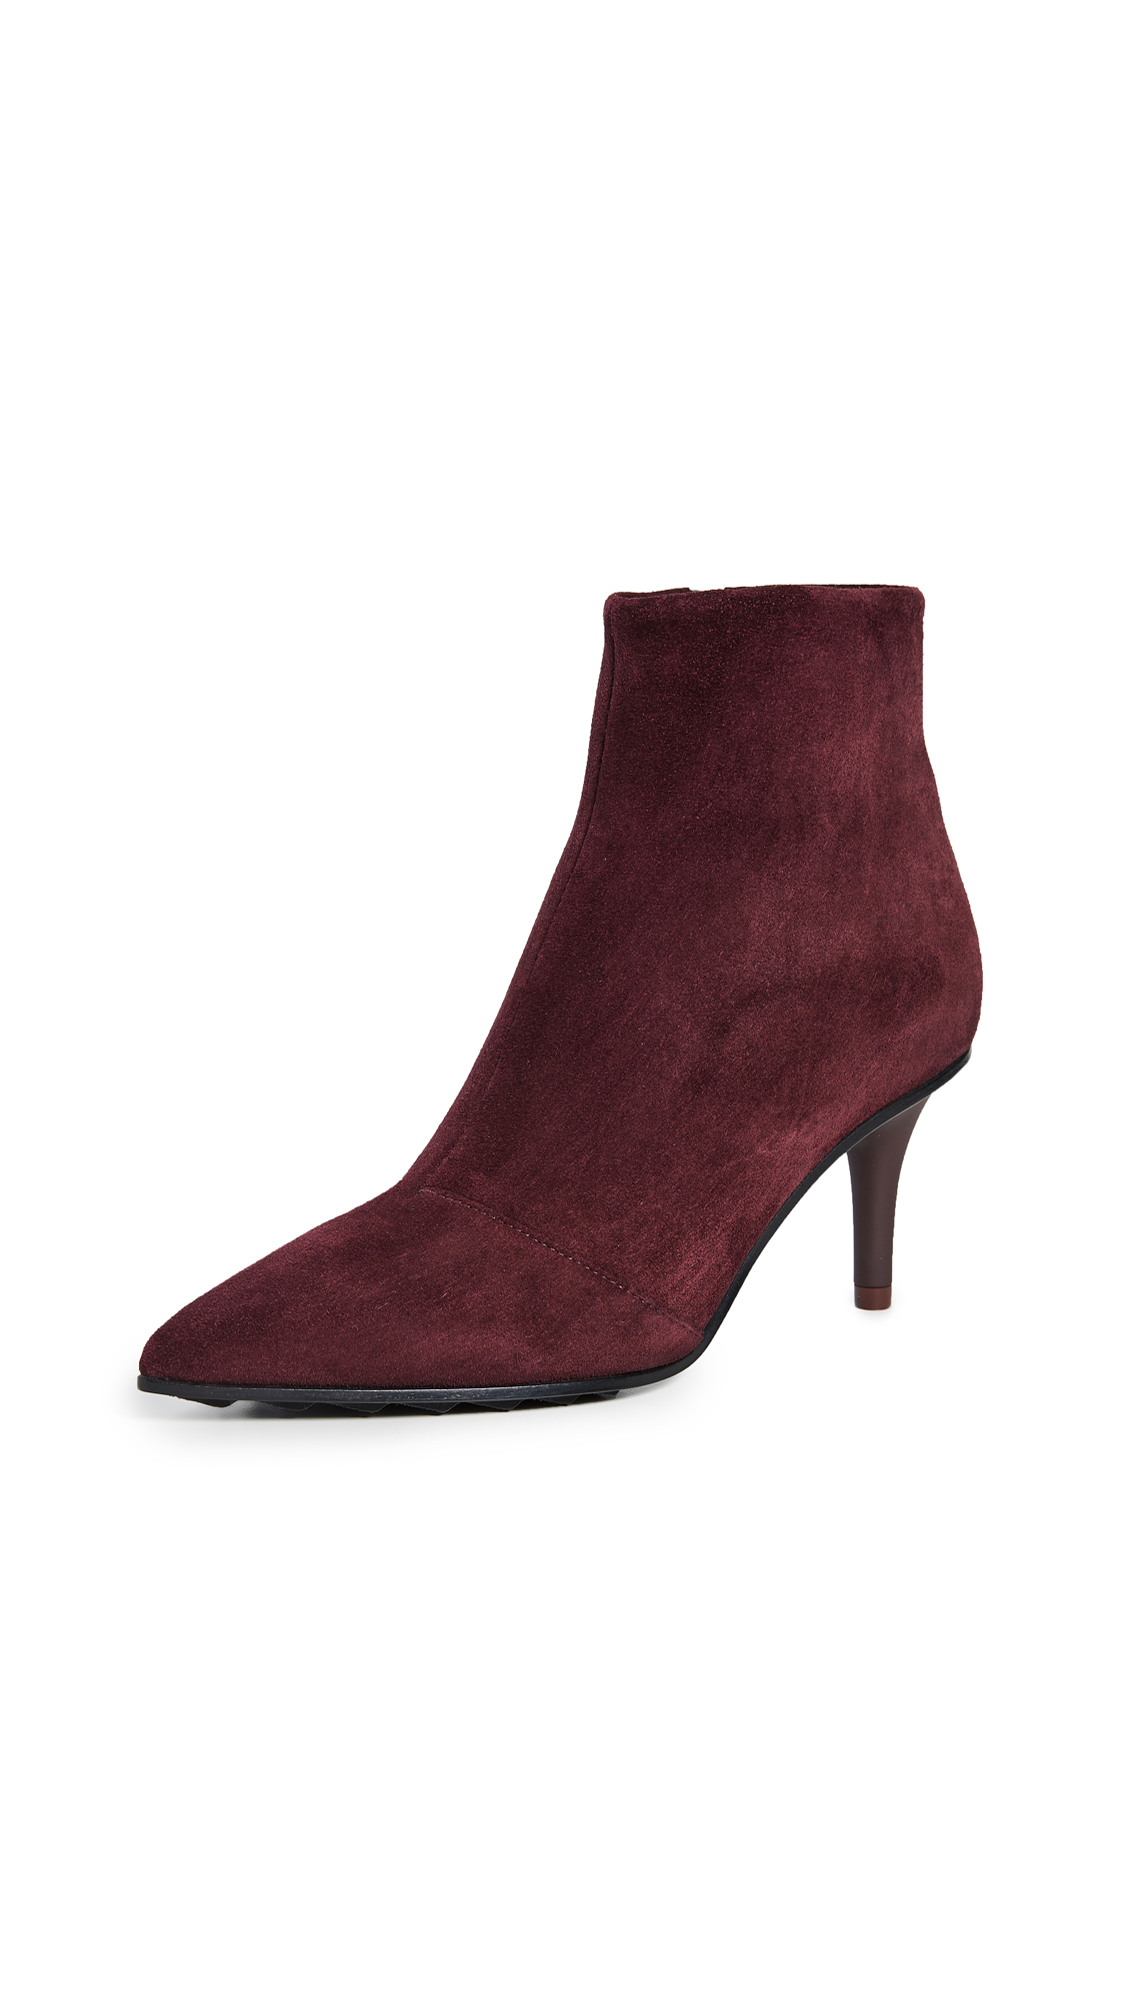 Rag & Bone Beha Moto Booties - 40% Off Sale